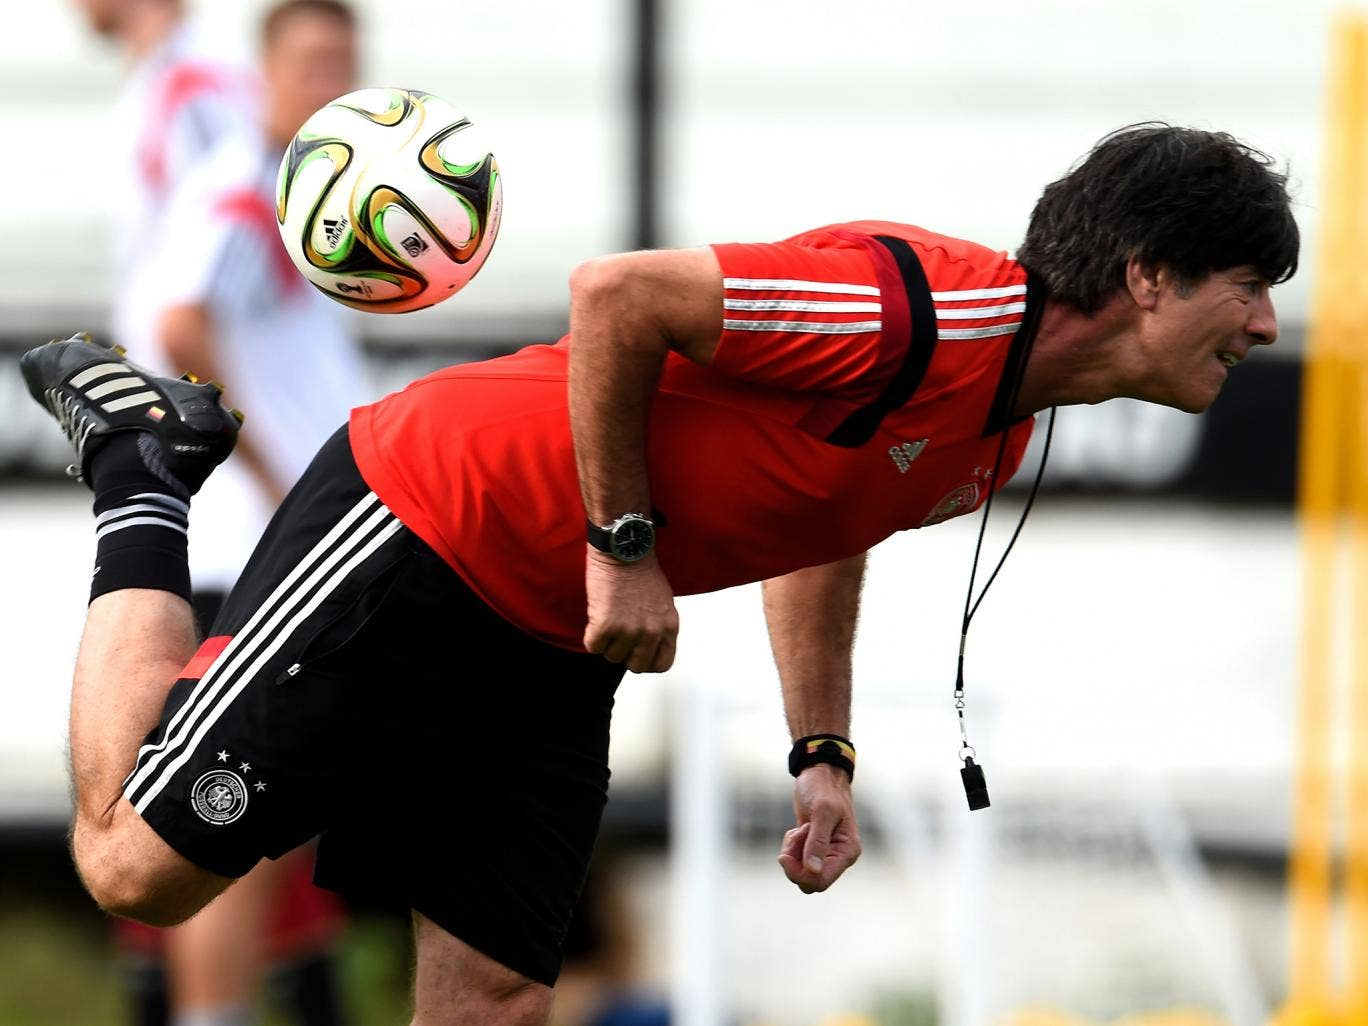 Joachim Löw trains with his Germany squad ahead of the World Cup final